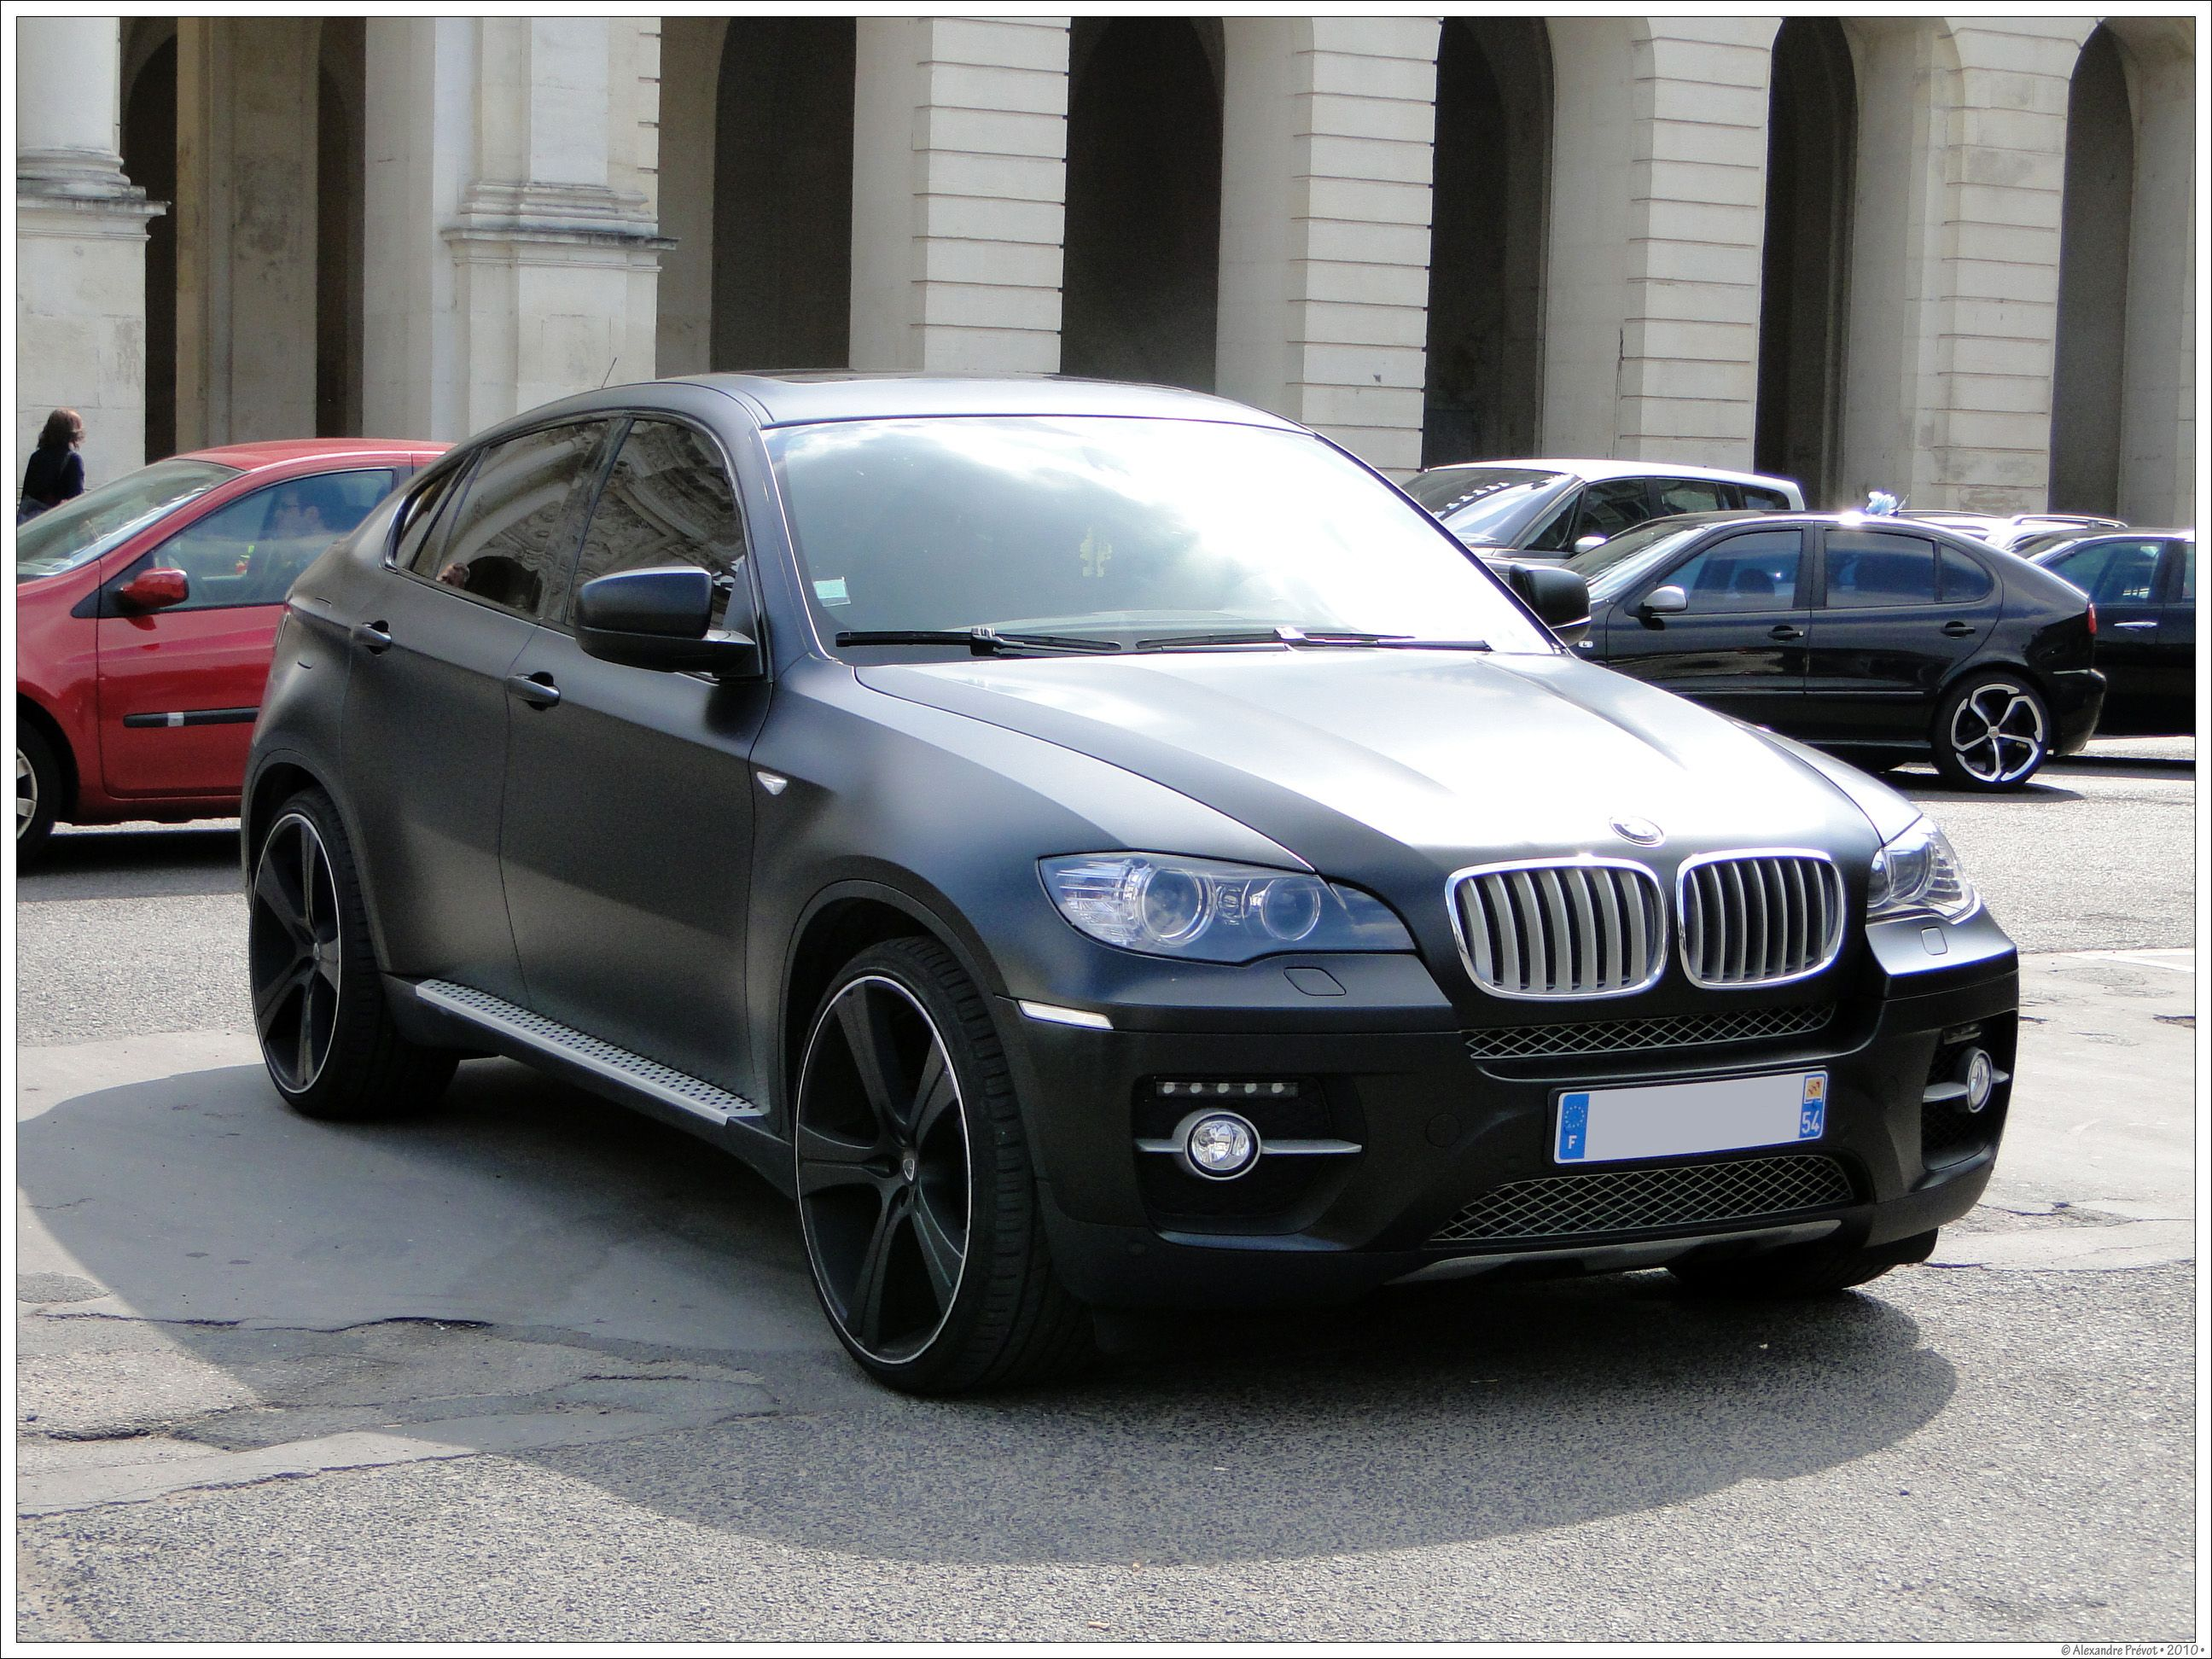 bmw x6 sport noir mat recherche google bmw pinterest bmw x6 and bmw. Black Bedroom Furniture Sets. Home Design Ideas